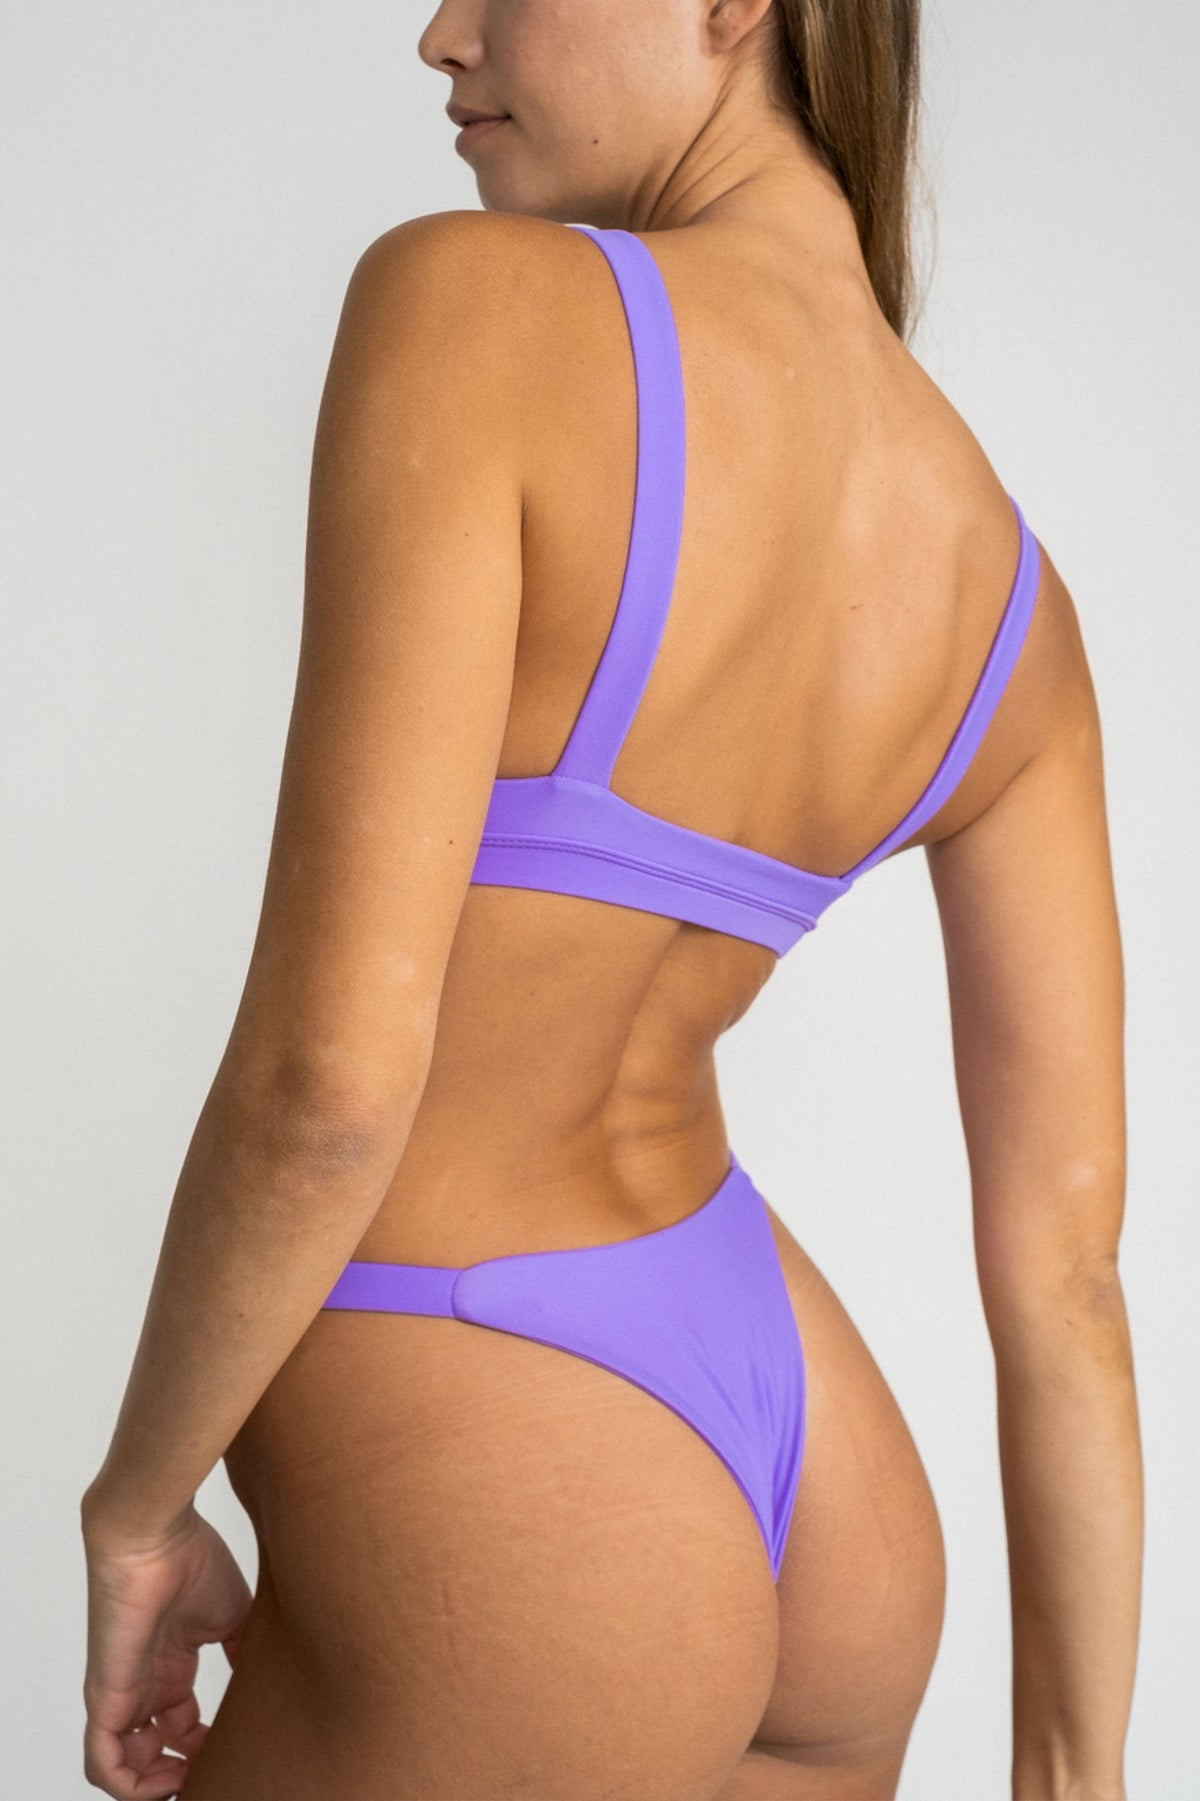 A close up of the back of a woman looking to the side wearing minimal coverage high cut bright purple bikini bottoms with a matching bright purple bikini top.